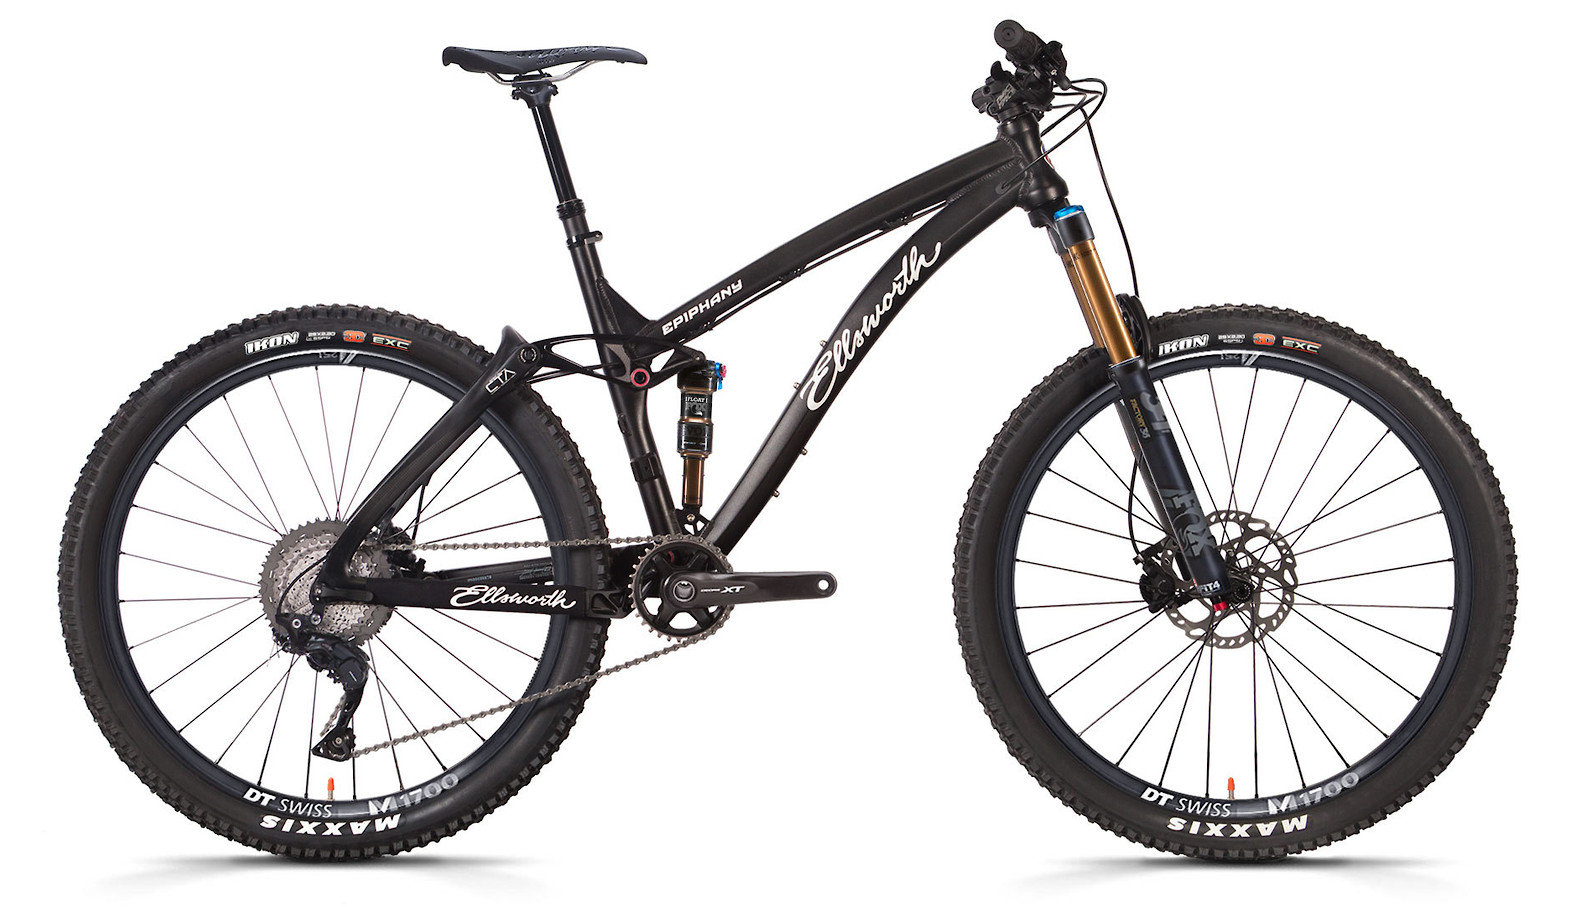 "2019 Ellsworth Epiphany Alloy Convert XT (Black; 29"" build shown)"